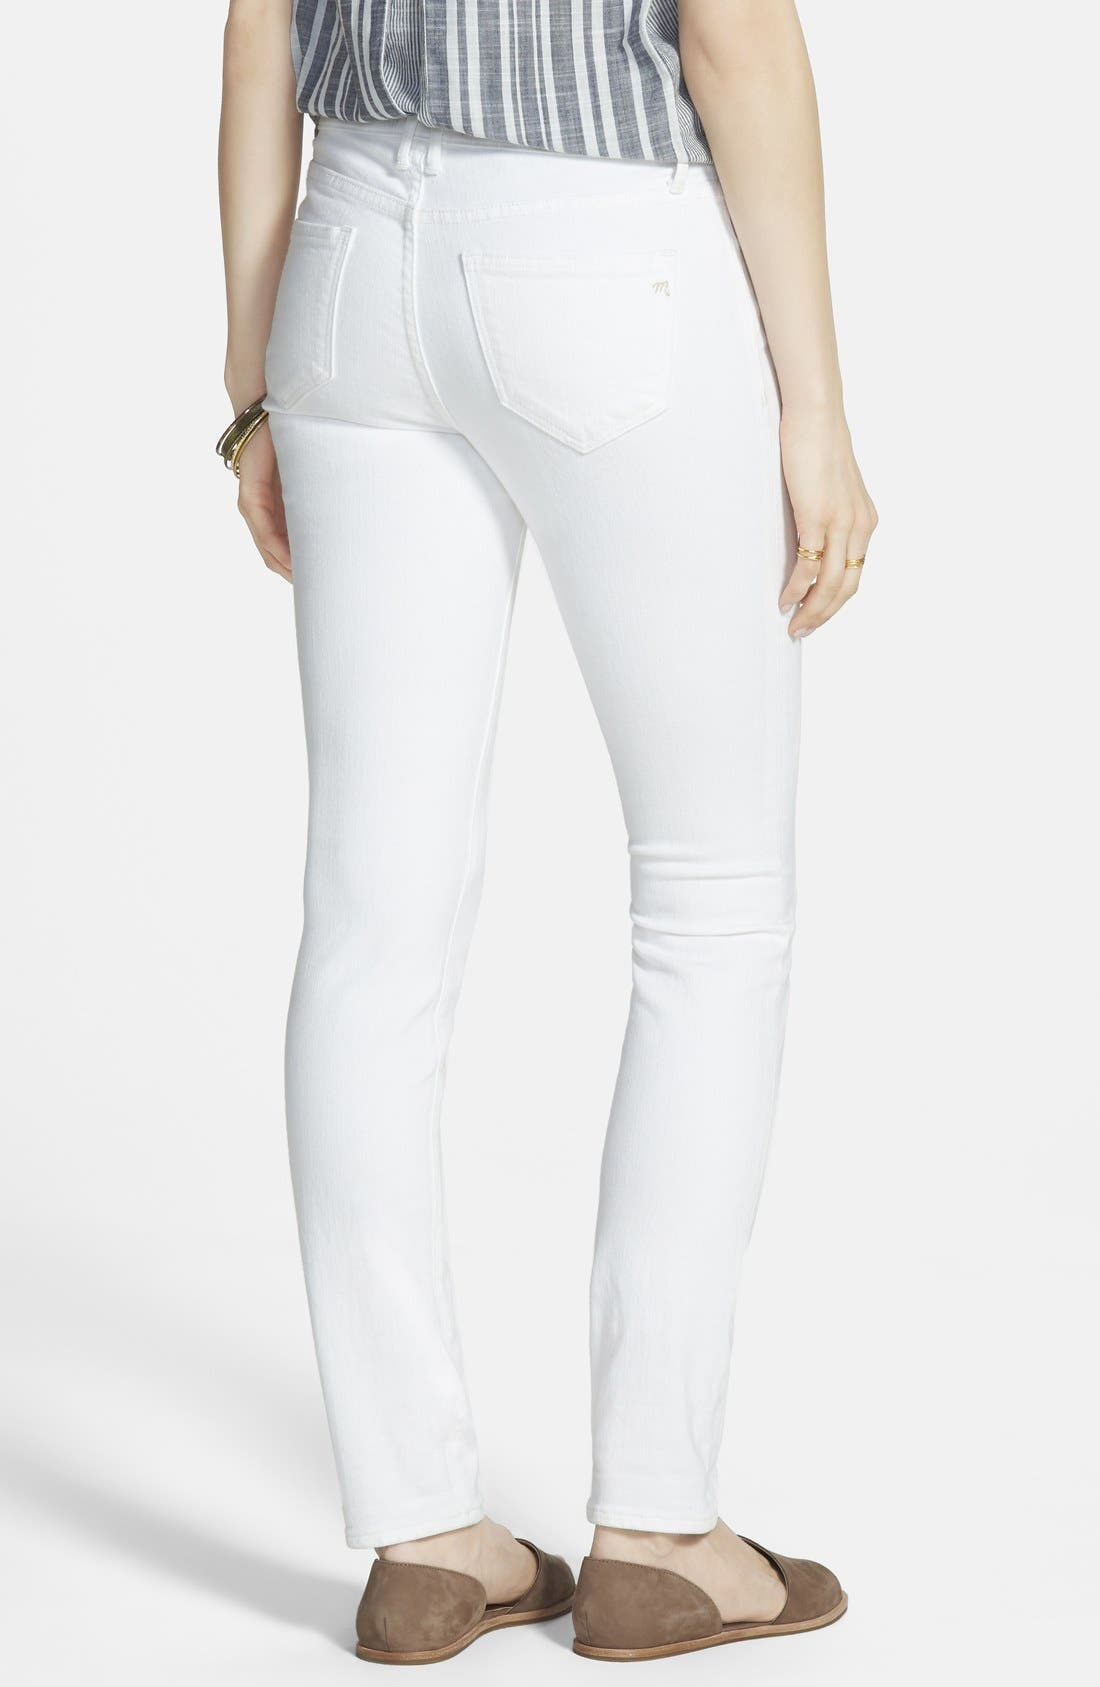 Alternate Image 2  - Madewell 9-Inch High-Rise Skinny Jeans (Pure White)